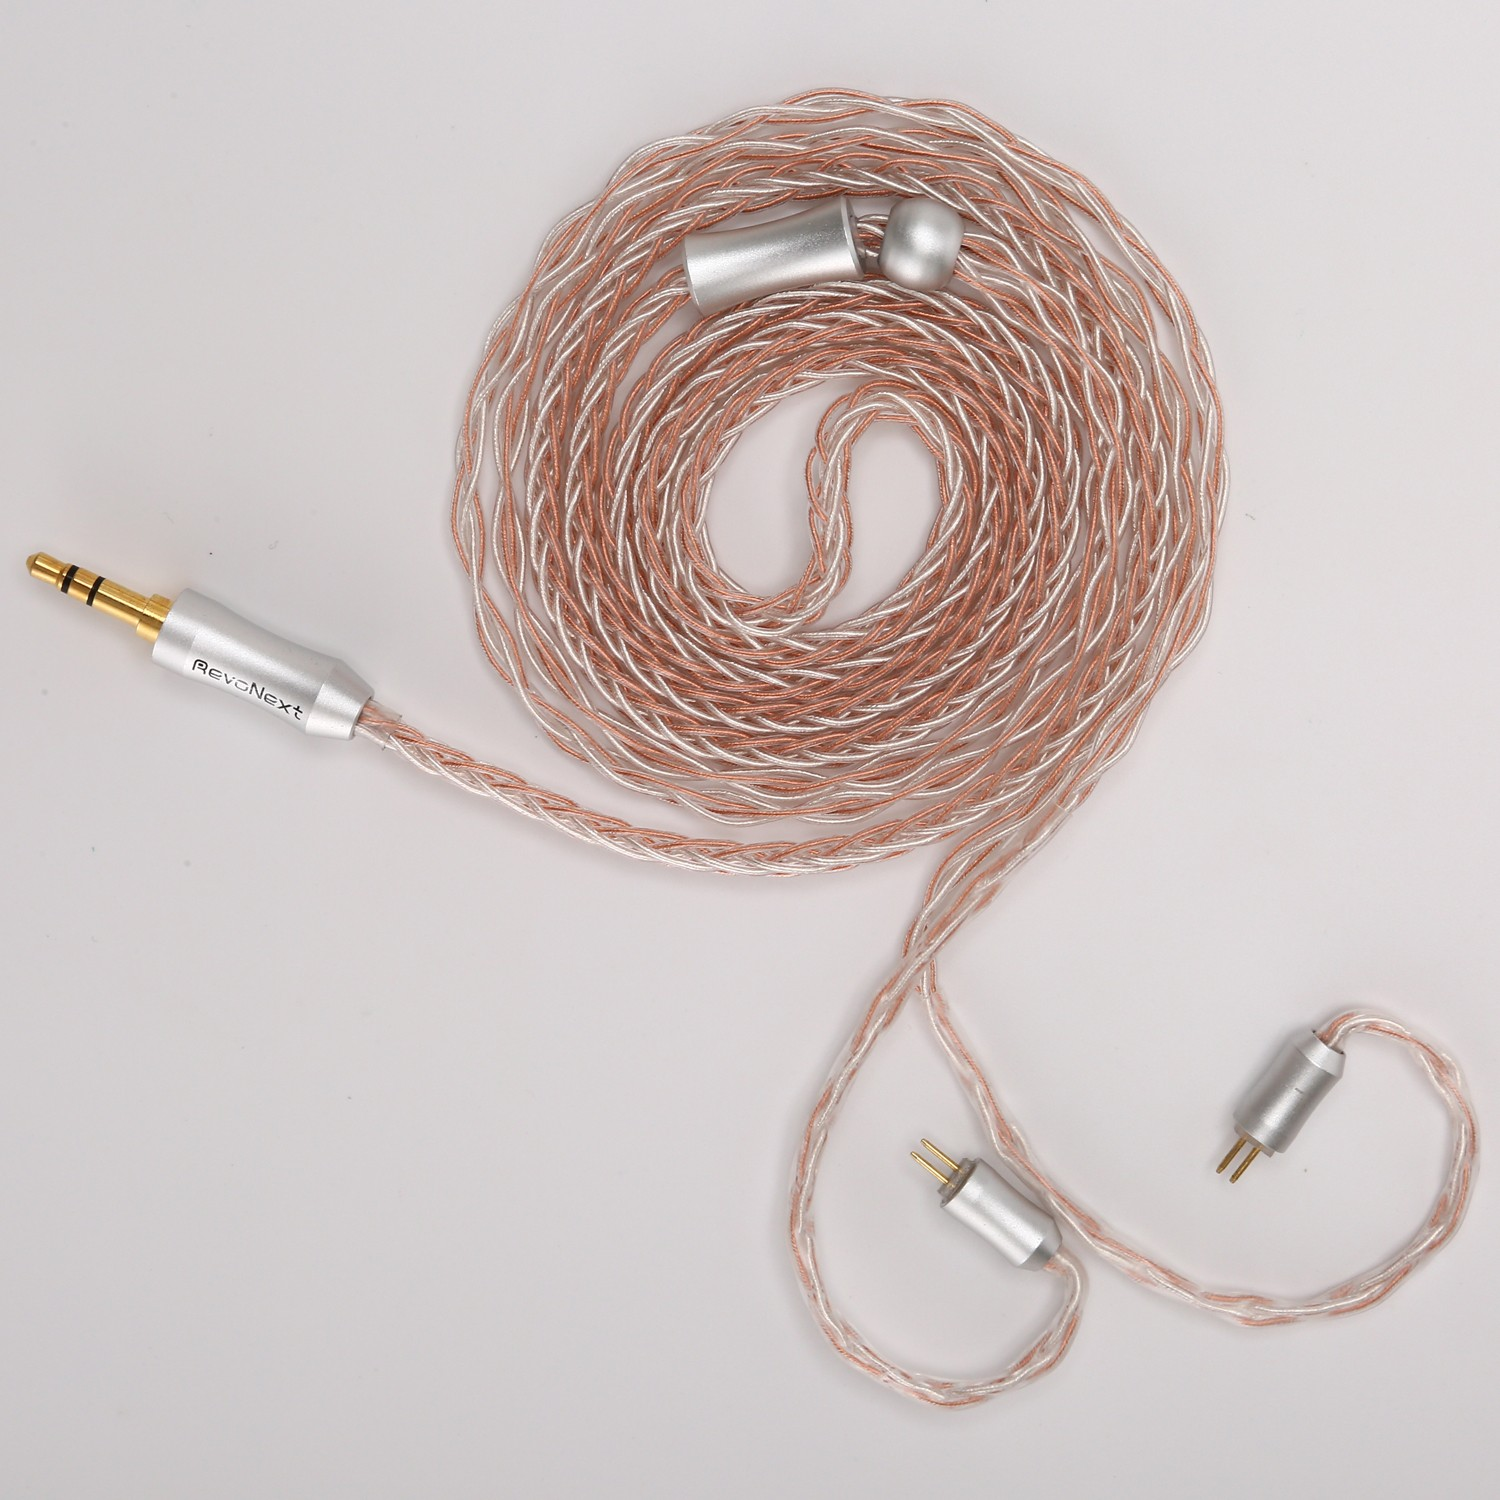 factory price earphone cable factory for earphone-6